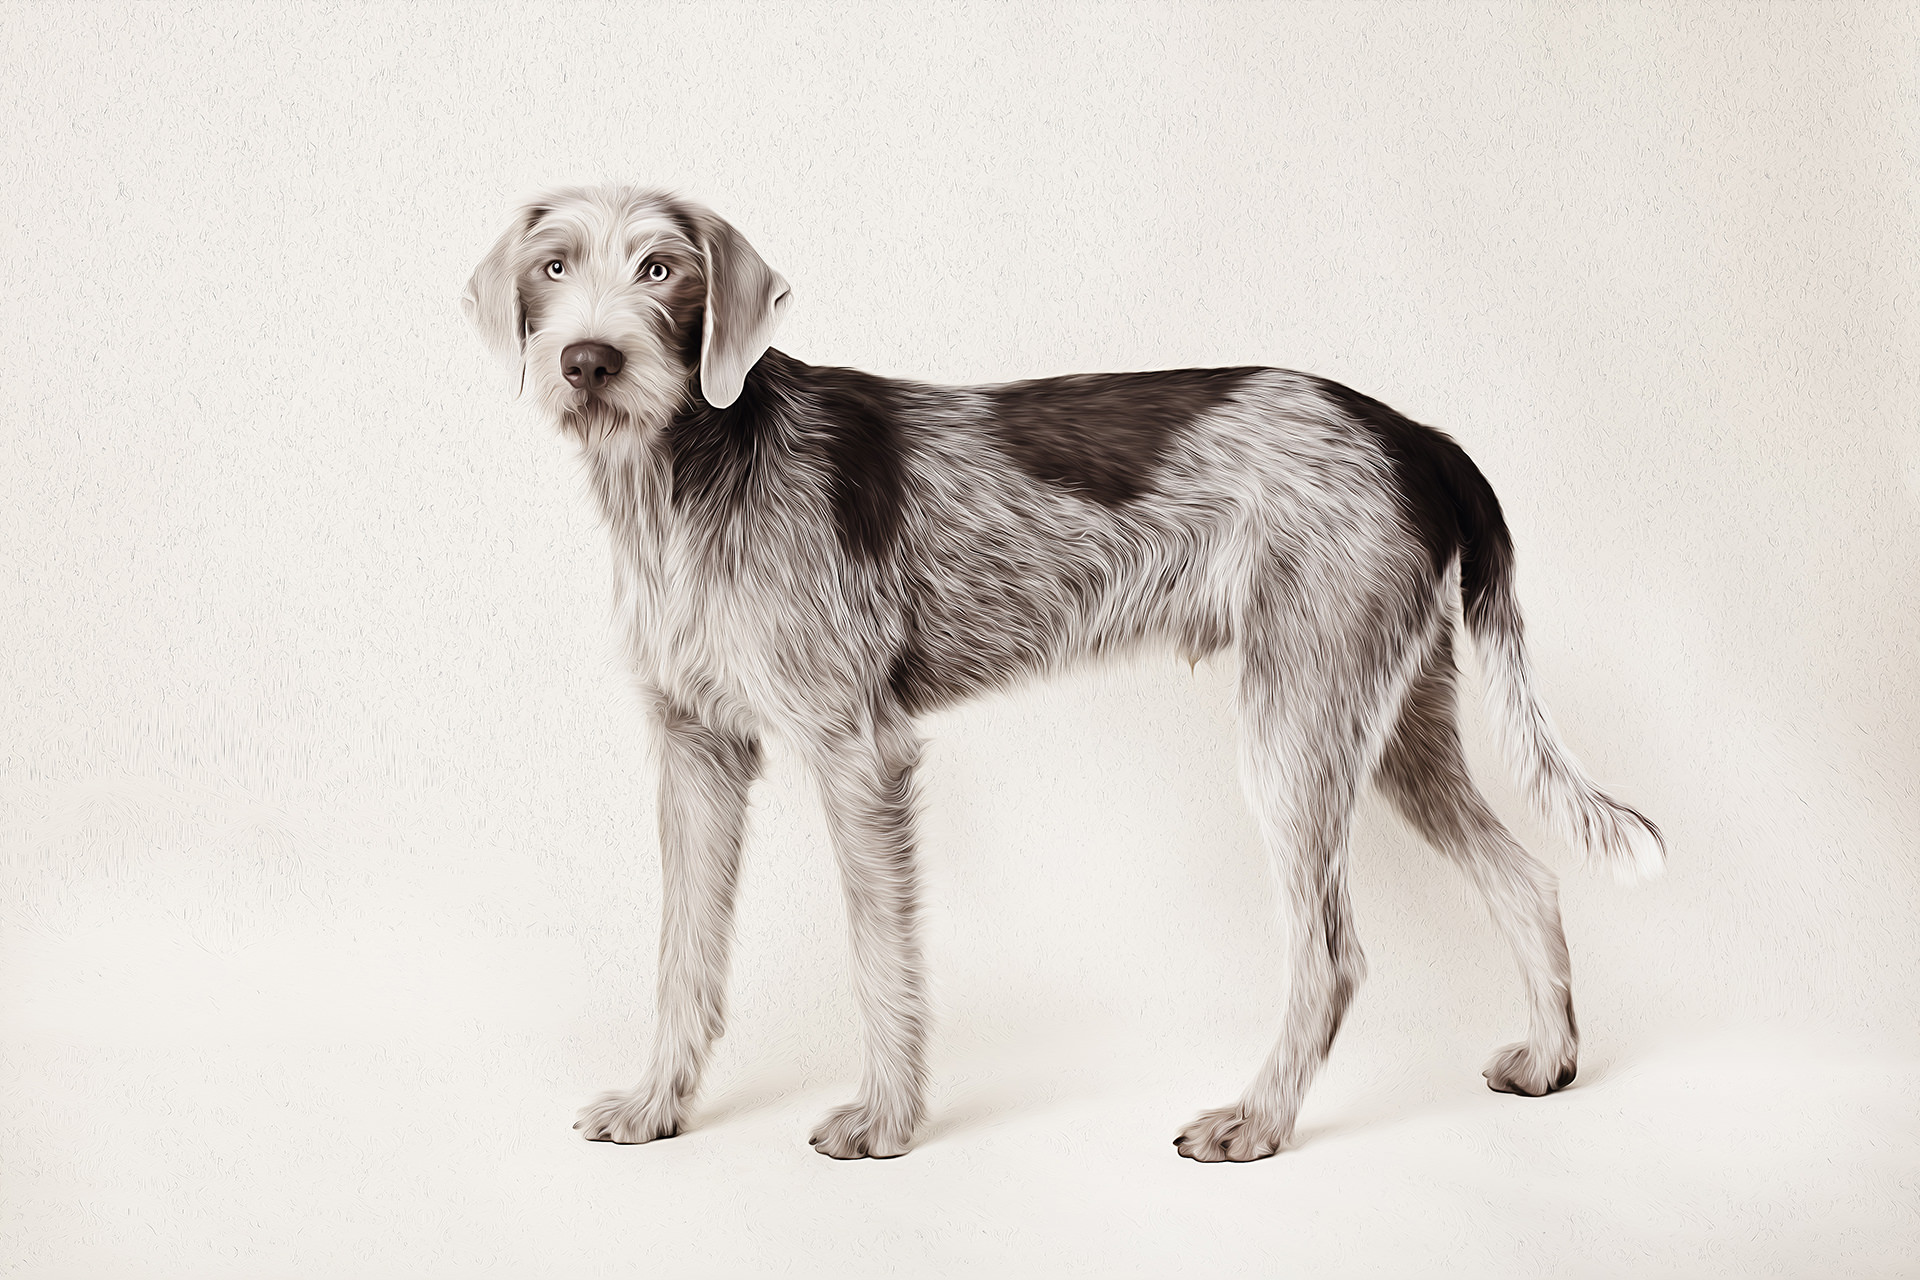 The Artful Dog studio pet photography